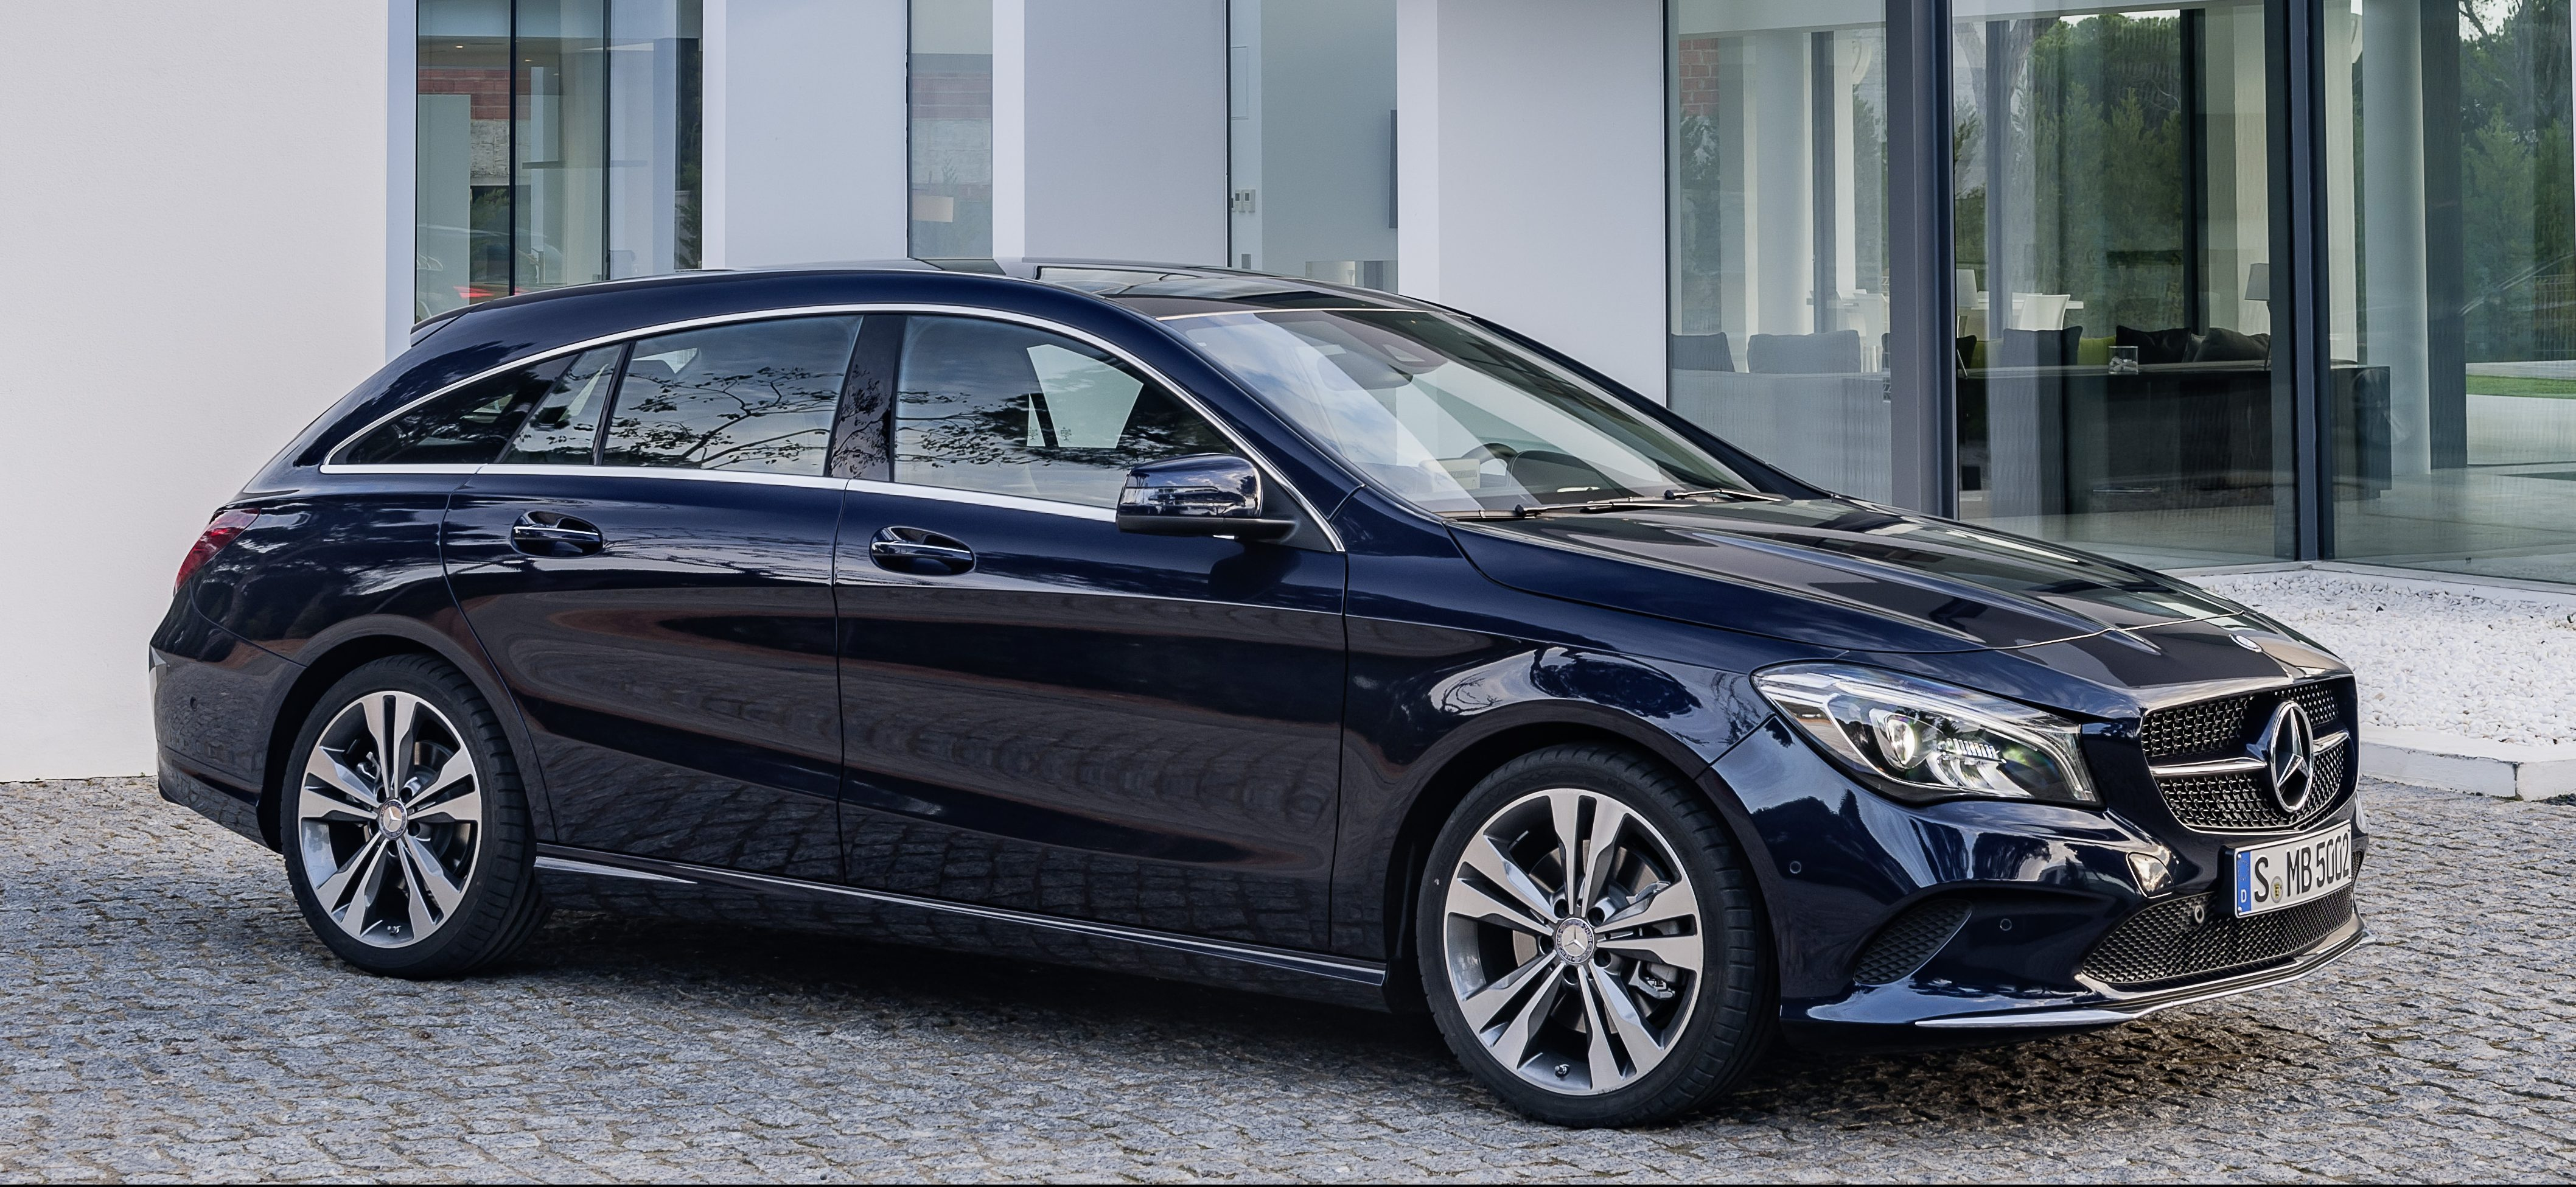 Mercedes benz cla facelift revealed set for ny debut paul for Mercedes benz syracuse ny